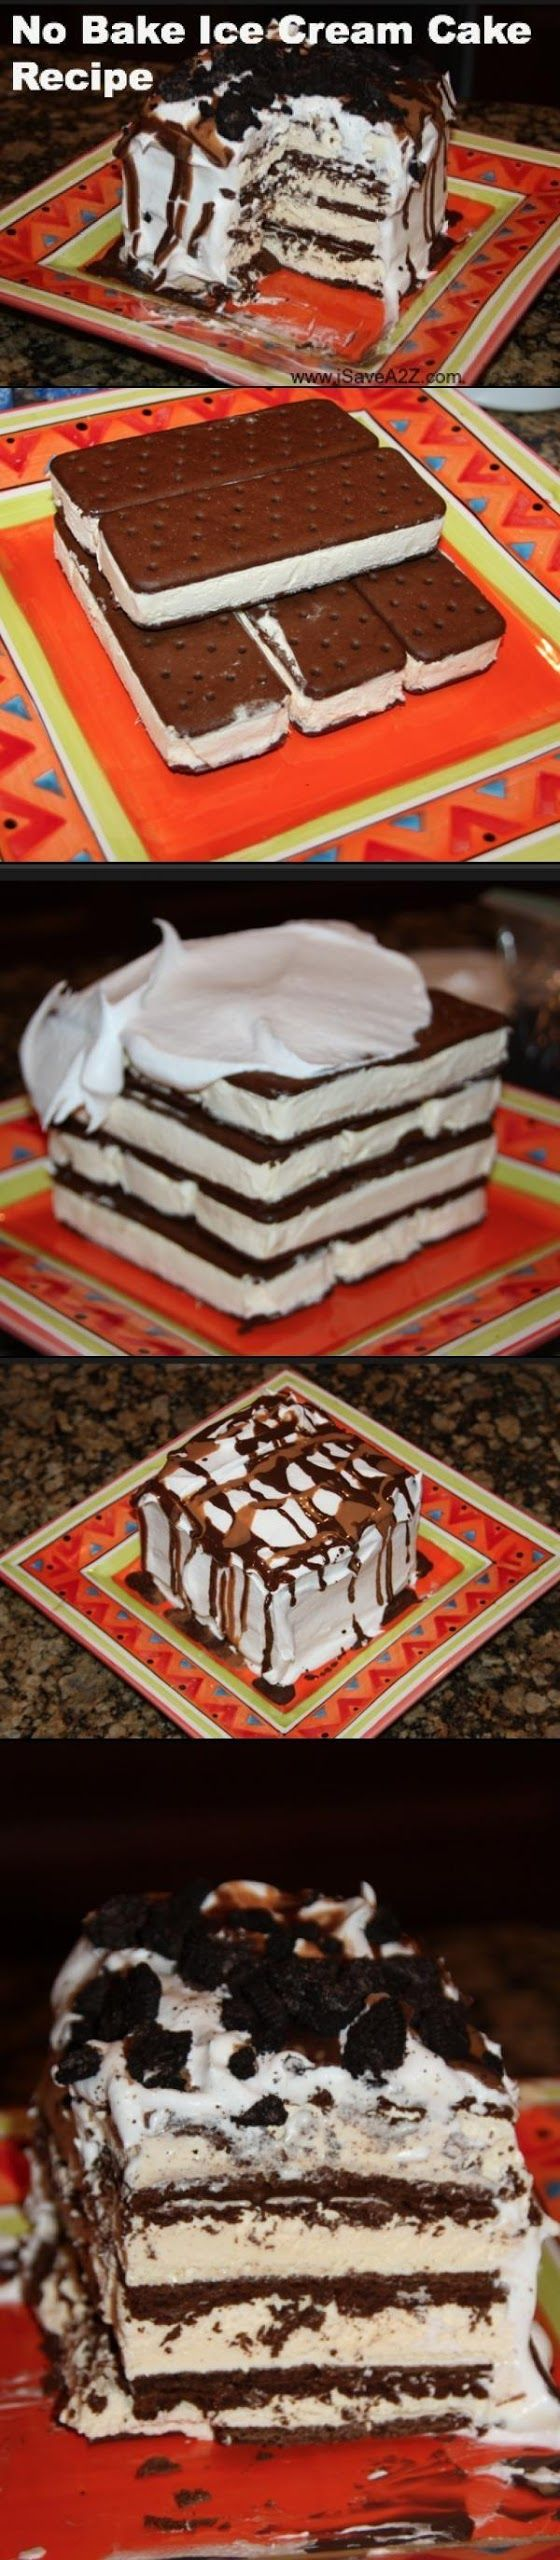 joysama images: NO BAKING REQD!! Ice Cream Sandwich cake